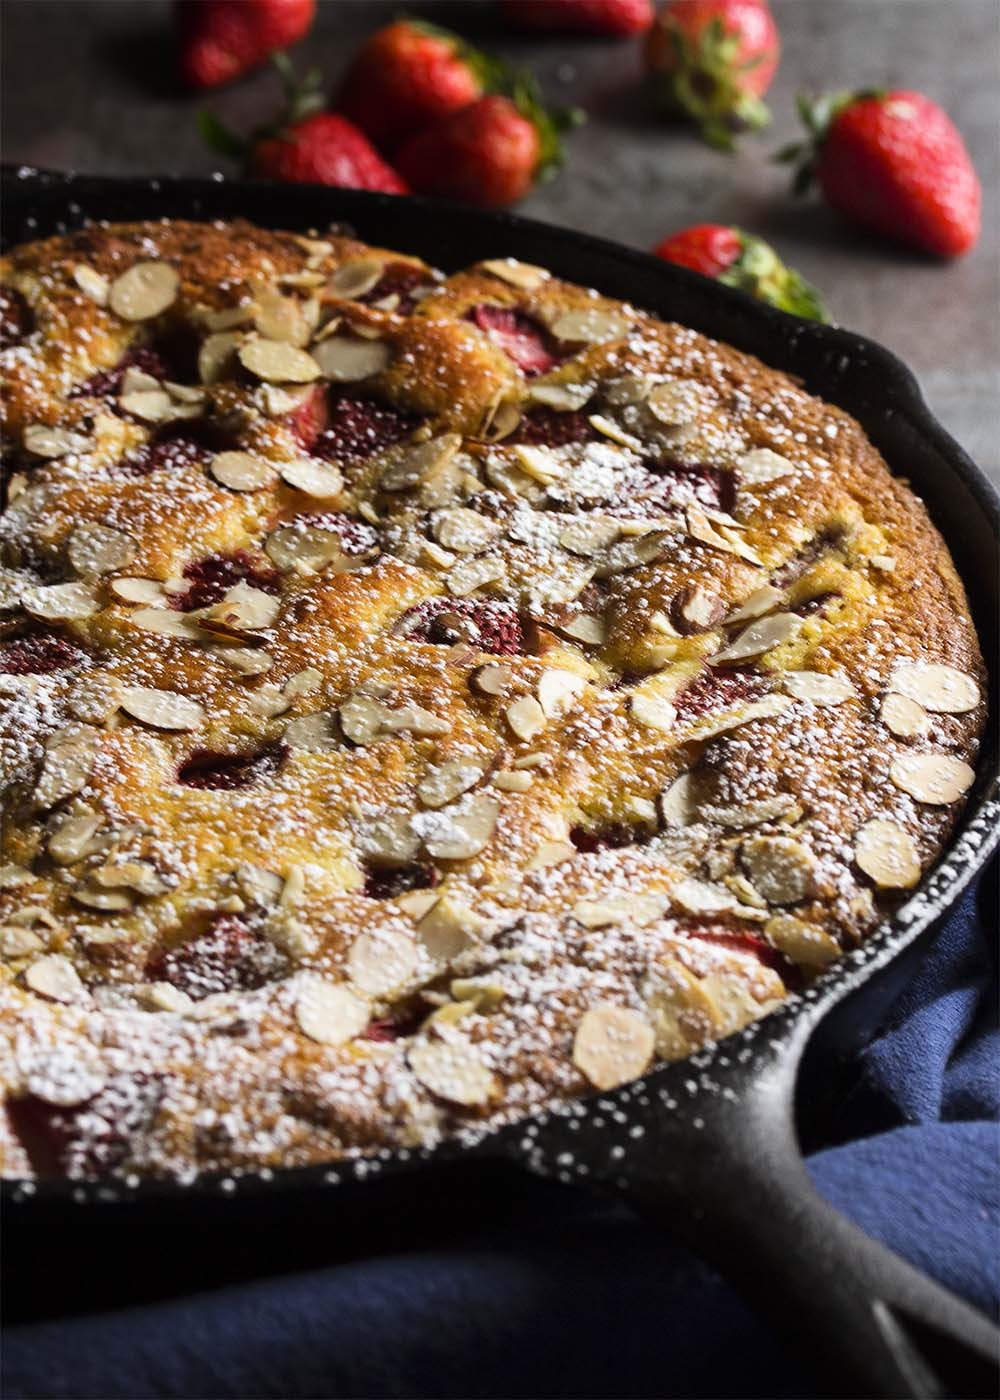 Strawberry yogurt skillet cake baked in a cast iron skillet topped with sliced almonds and powdered sugar.